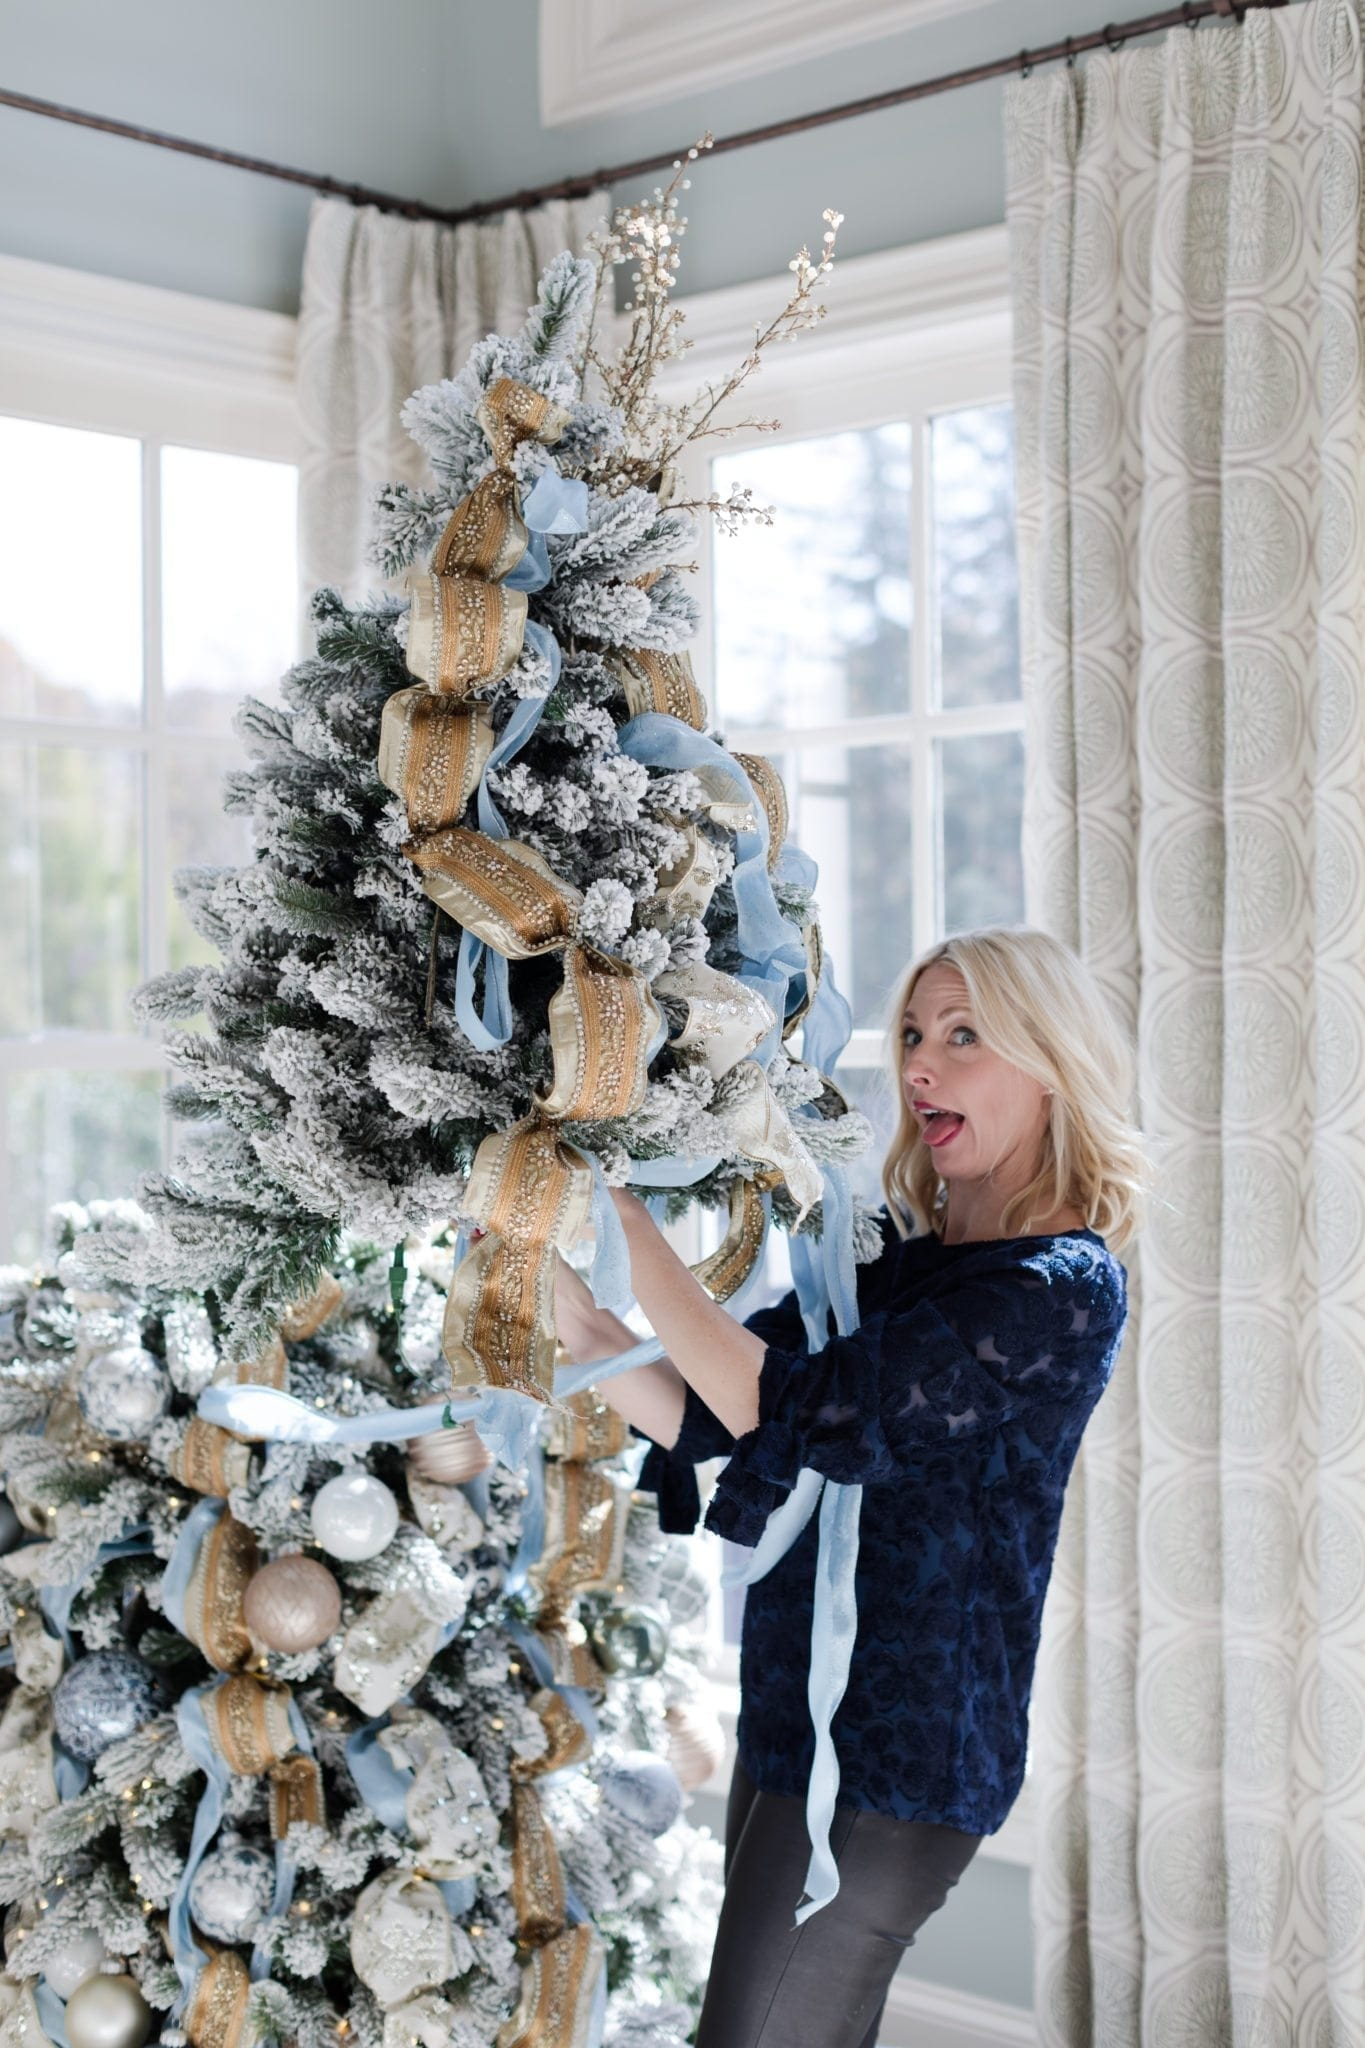 Frontgate Atlanta in store class on Christmas Tree decorating.